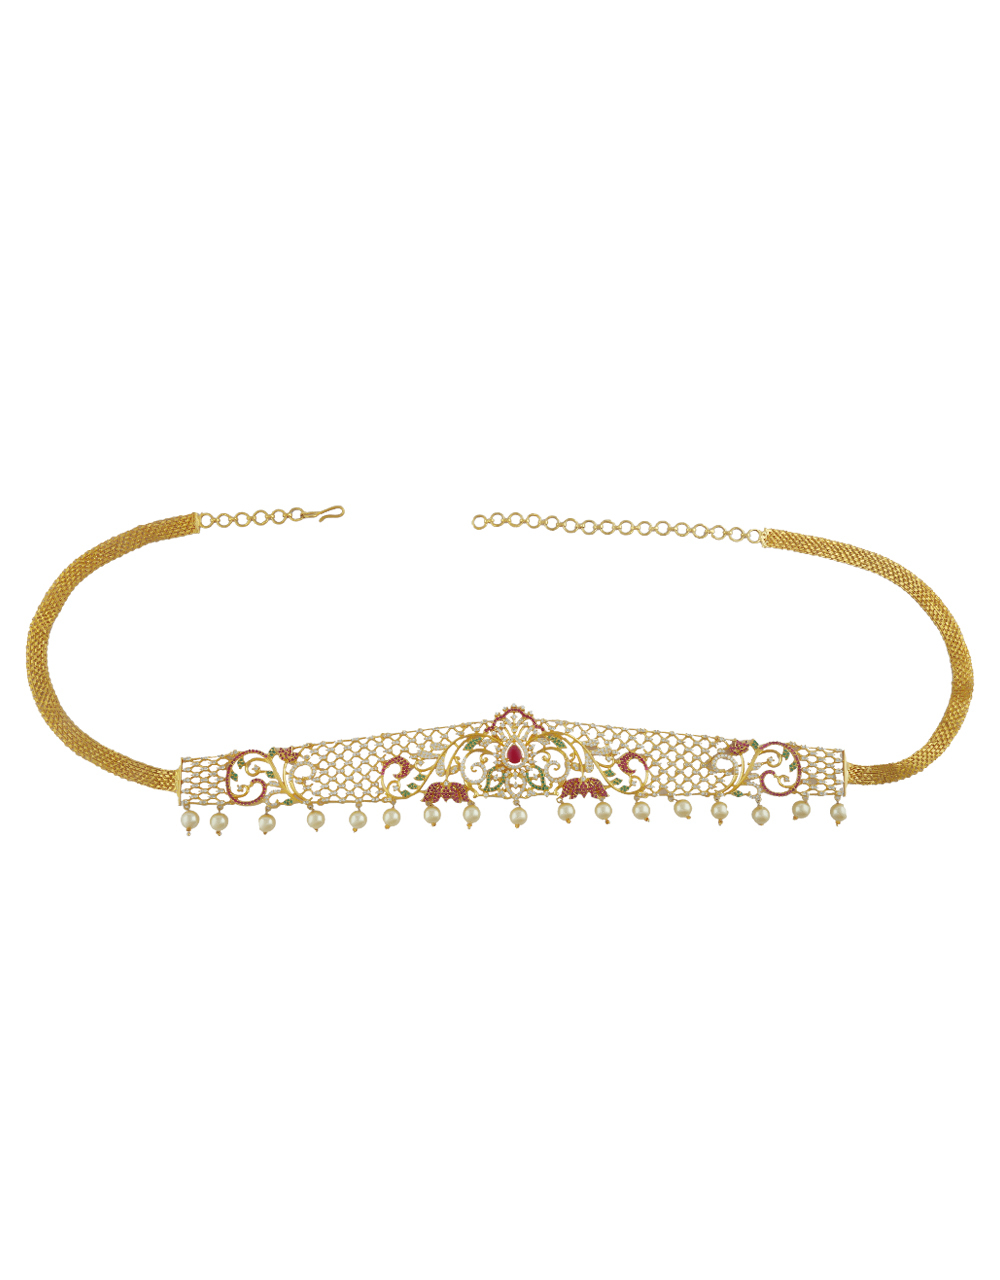 Gold Tone Styled With Mina Work Designer Kamar Patta Kamar Band For Women